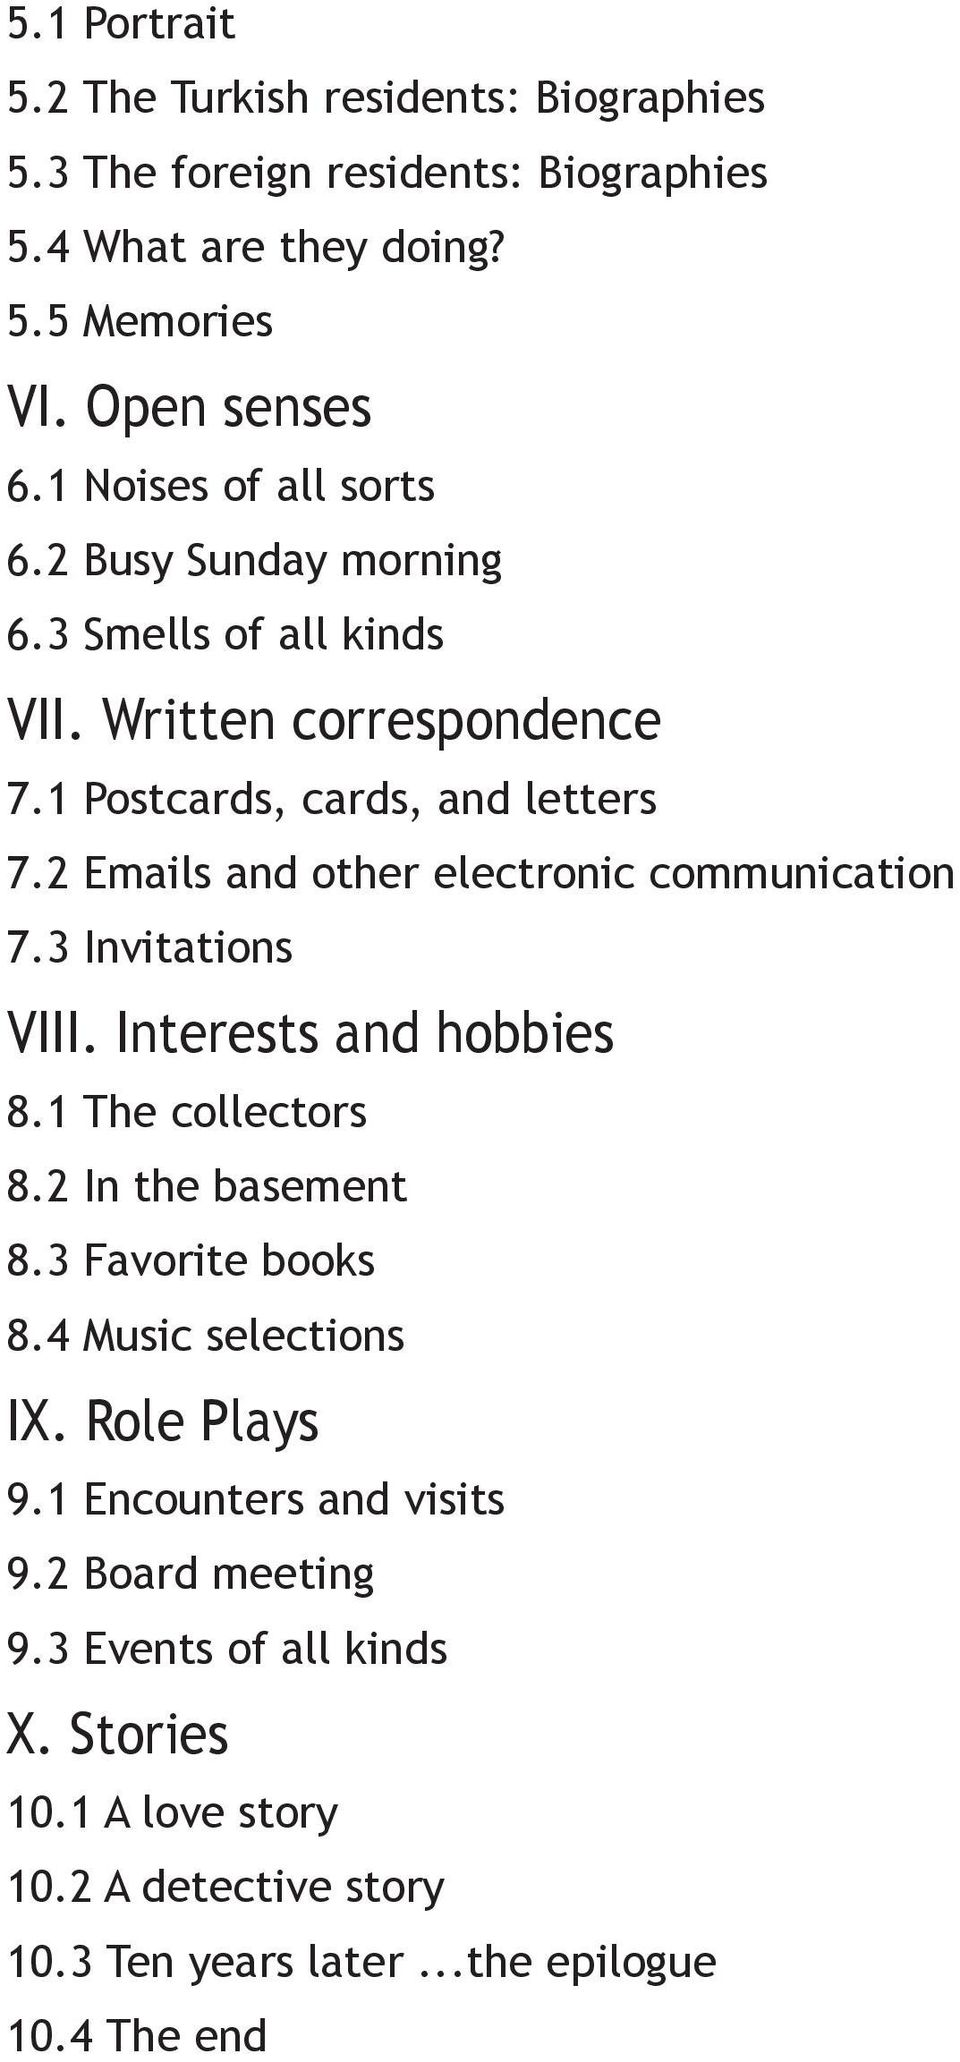 2 Emails and other electronic communication 7.3 Invitations VIII. Interests and hobbies 8.1 The collectors 8.2 In the basement 8.3 Favorite books 8.